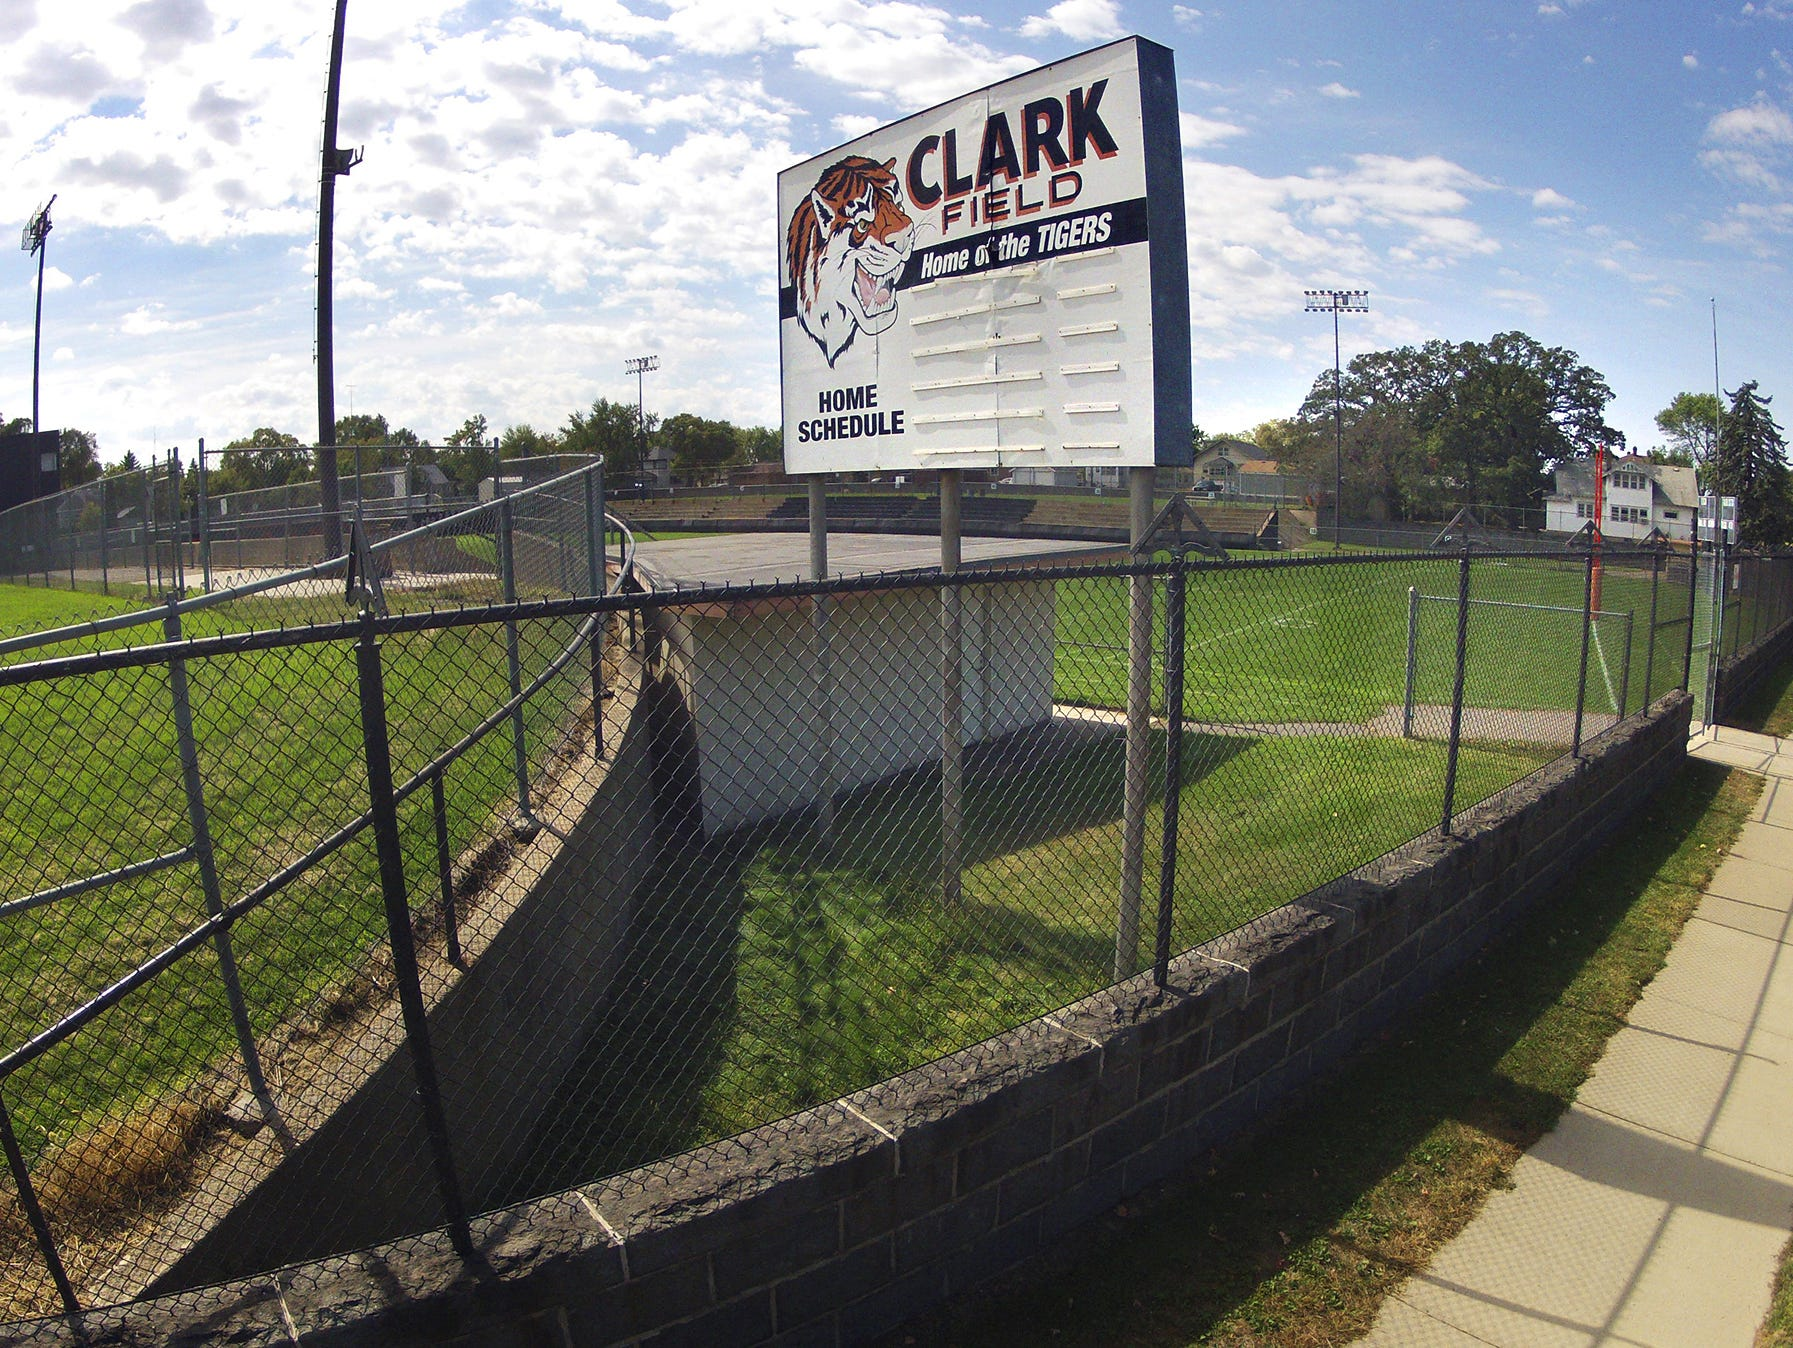 Tuesday's afternoon's freshmen football game between St. Cloud Tech and Alexandria was the last game scheduled to be played at Clark Field. The school district plans to build new district offices on the site. The Tech varsity has not played there since 2012.